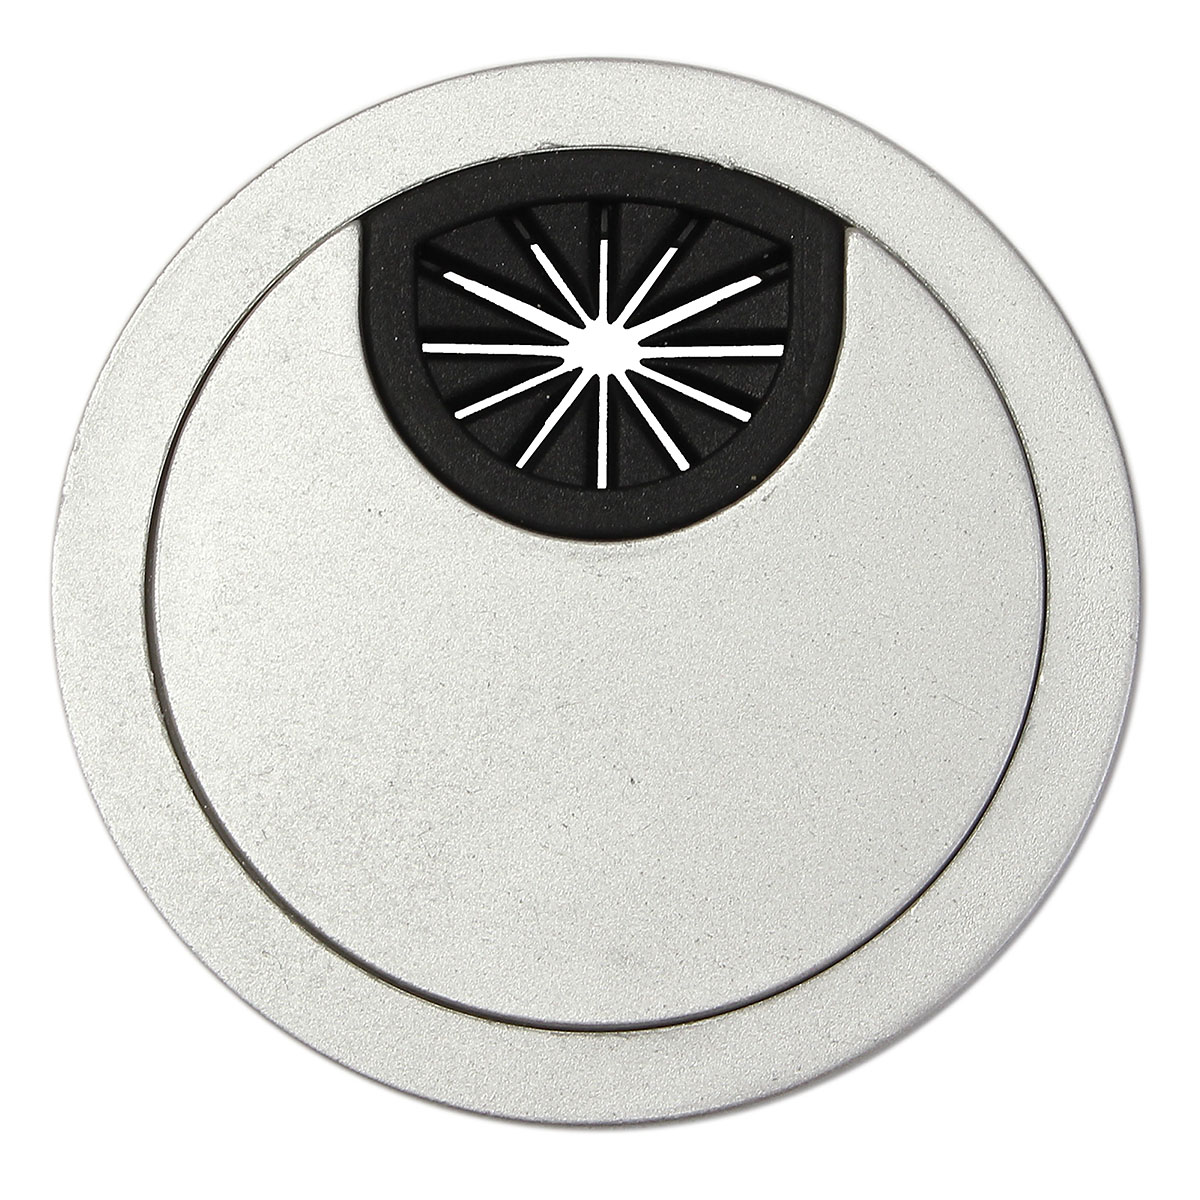 Other Gadgets - 50mm Cable Tidy Port Surface Outlet Wire Hole Cover ...